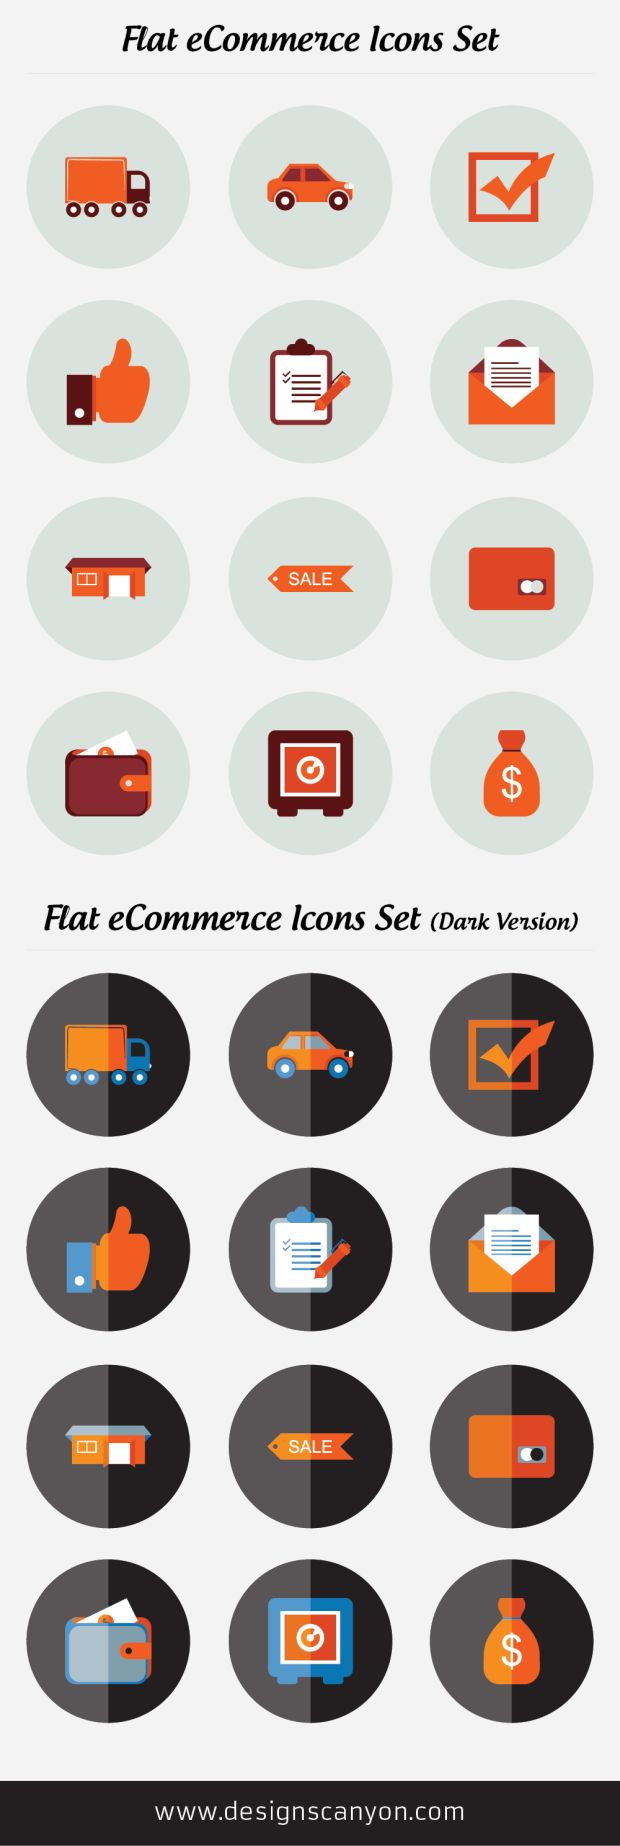 Flat eCommerce Icons Set Free Download